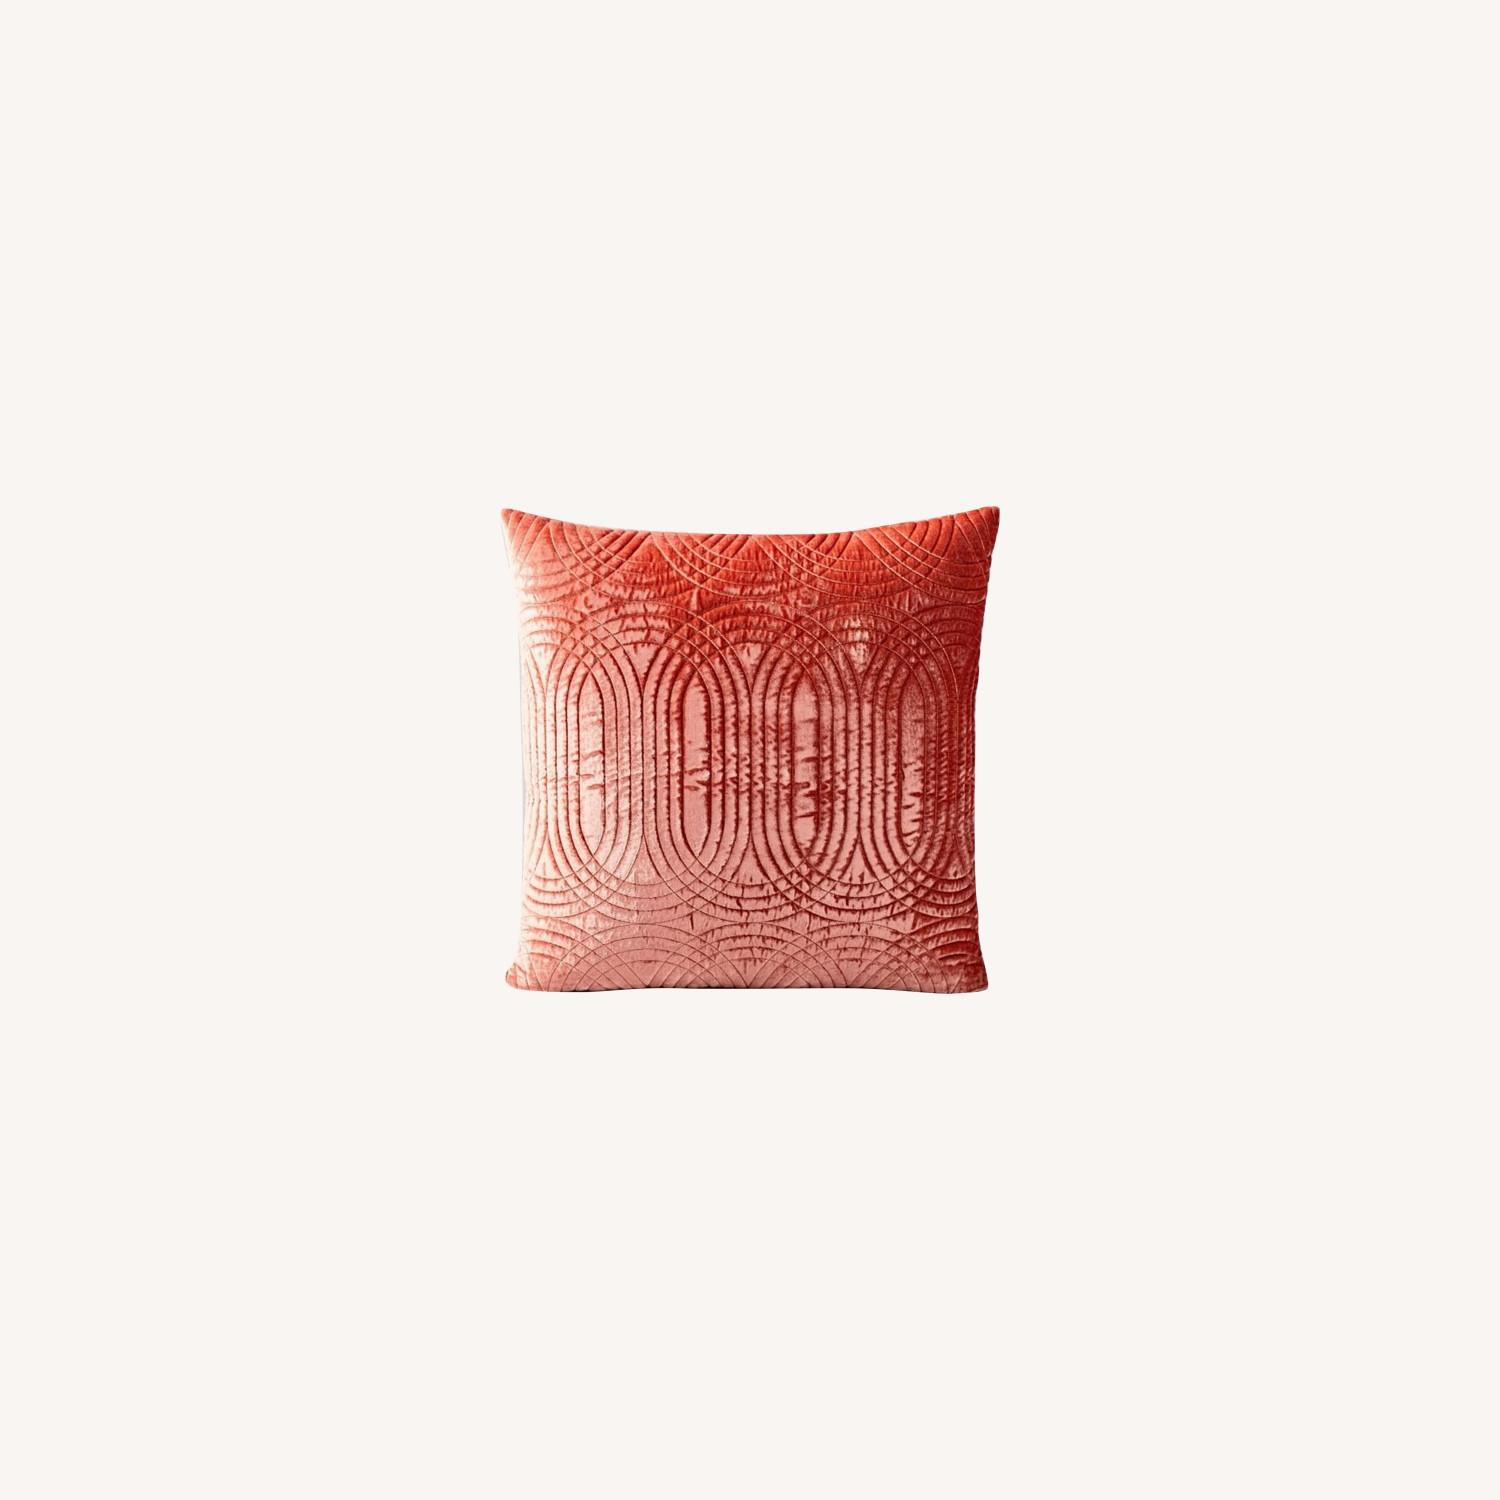 West Elm Lush Velvet Infinity Quilted Pillow - image-0